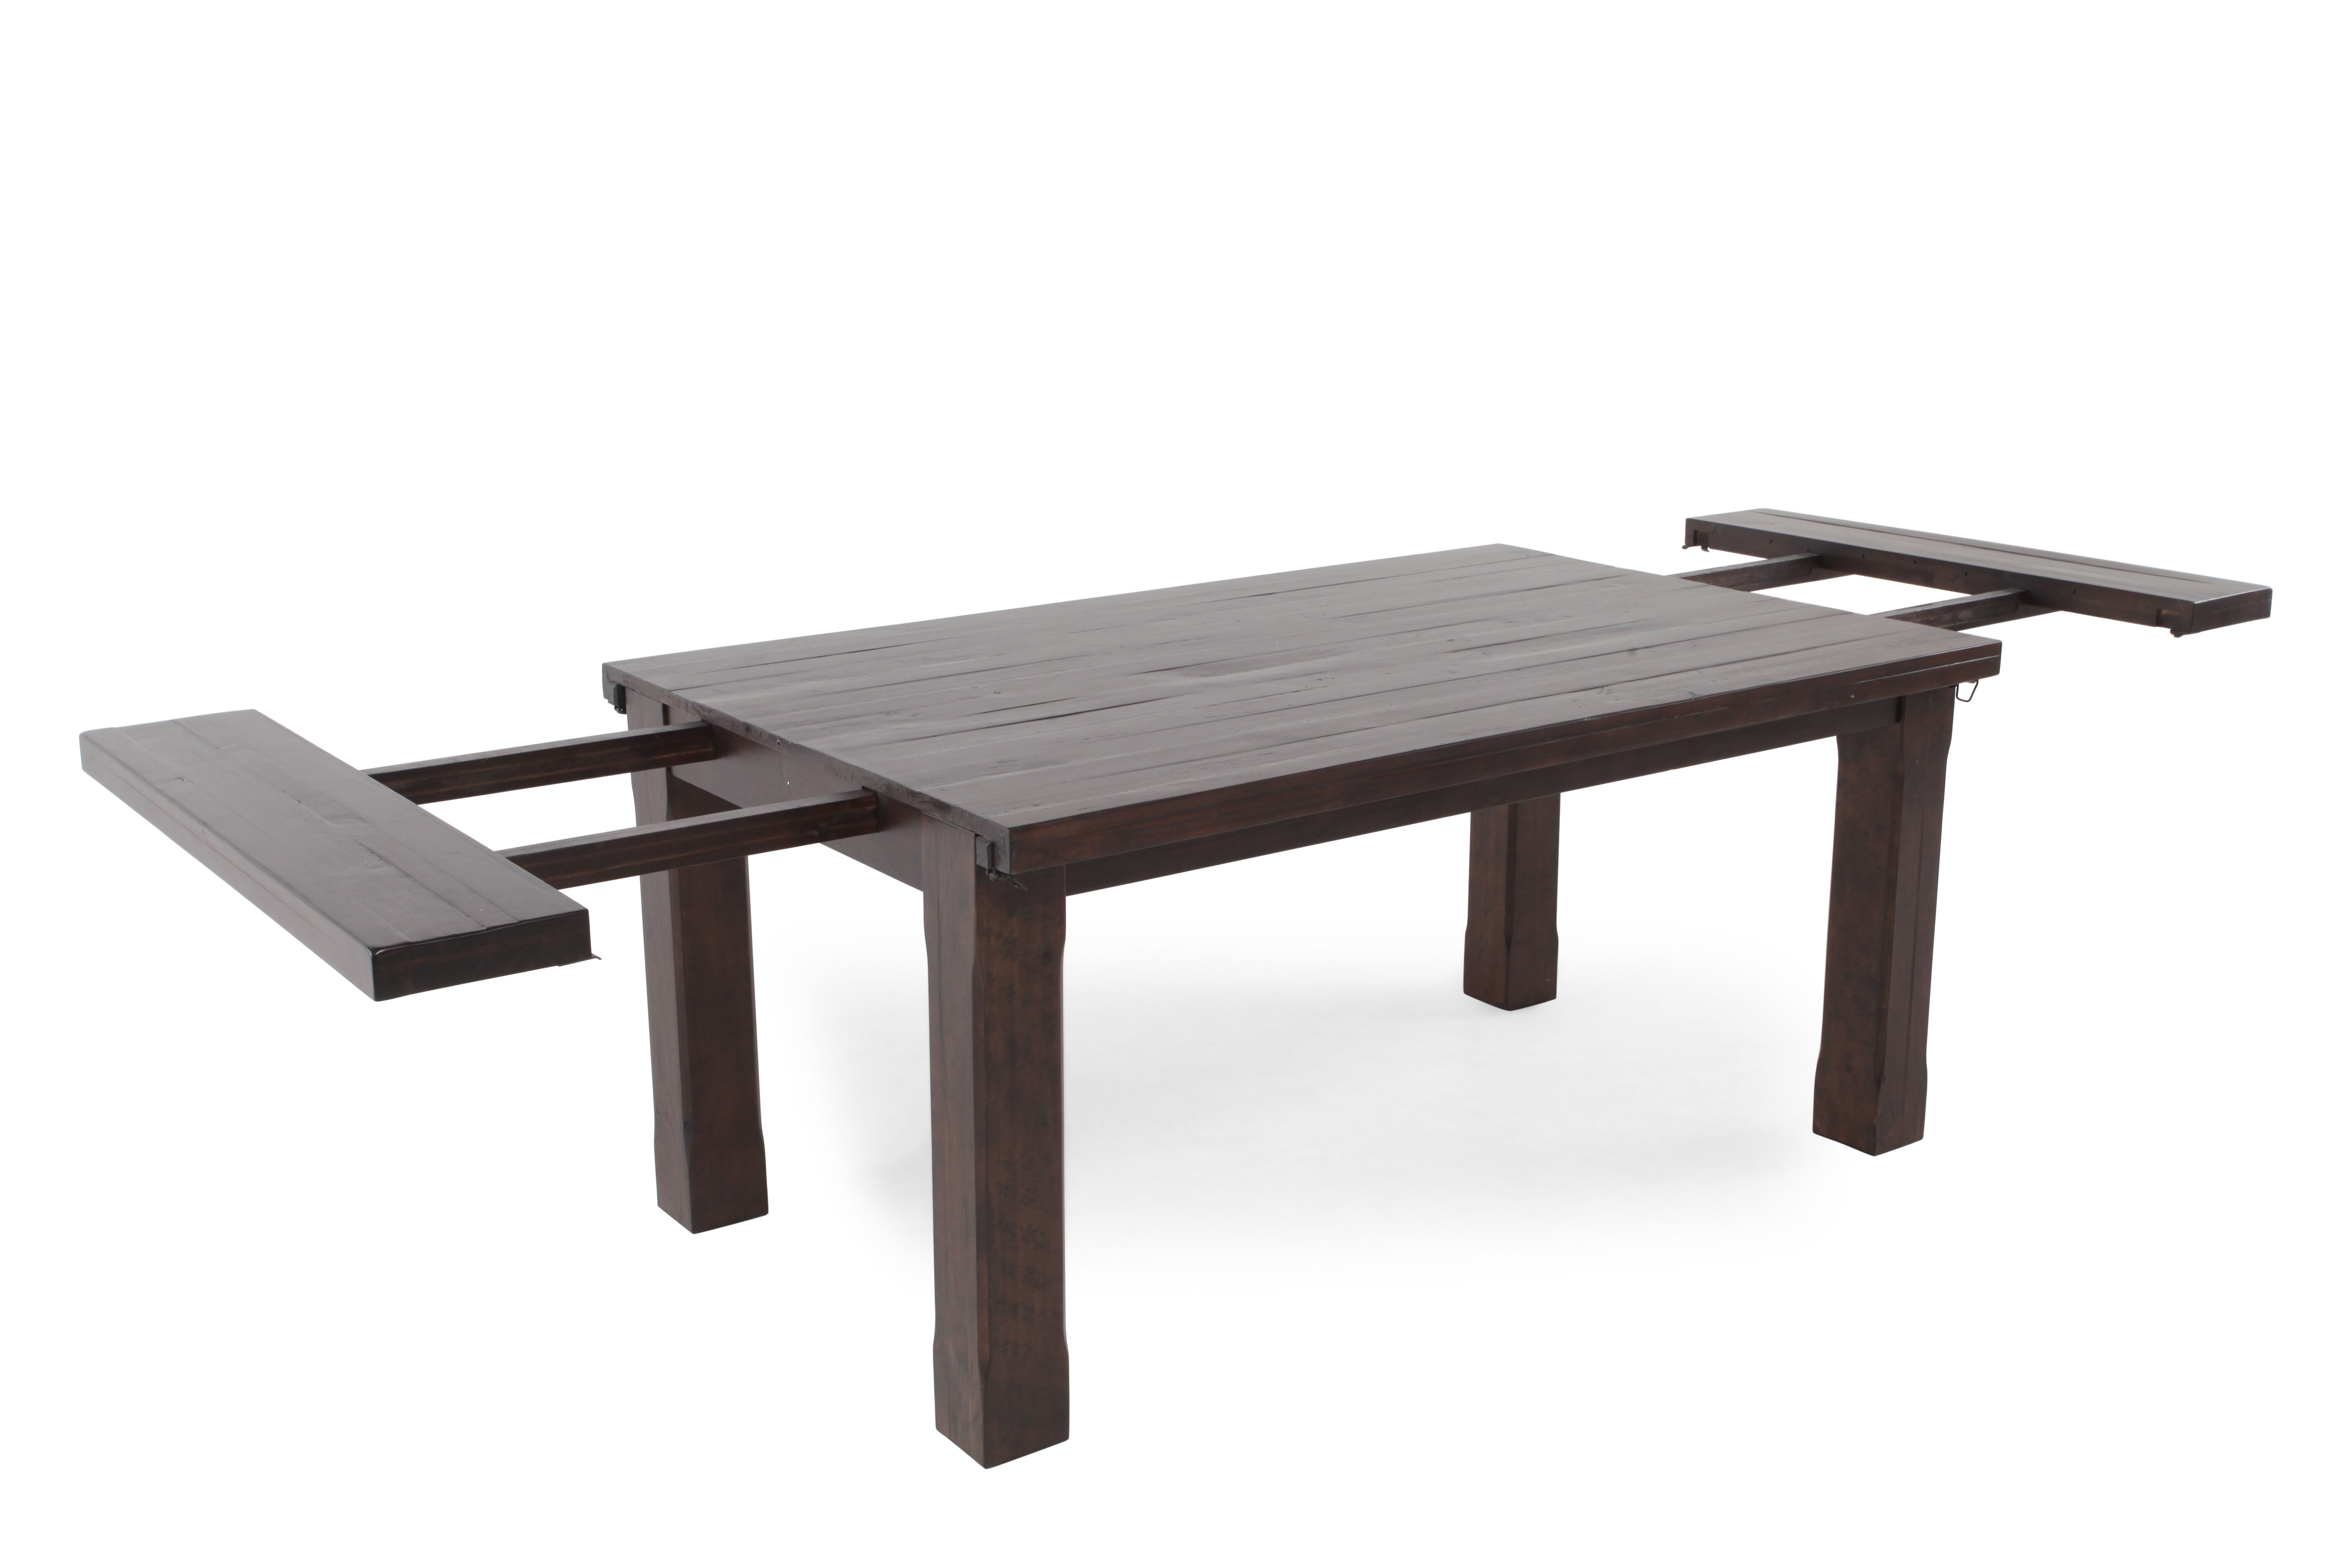 Transitional 80u0026rdquo; To 112u0026rdquo; Planed Top Dining Table ...